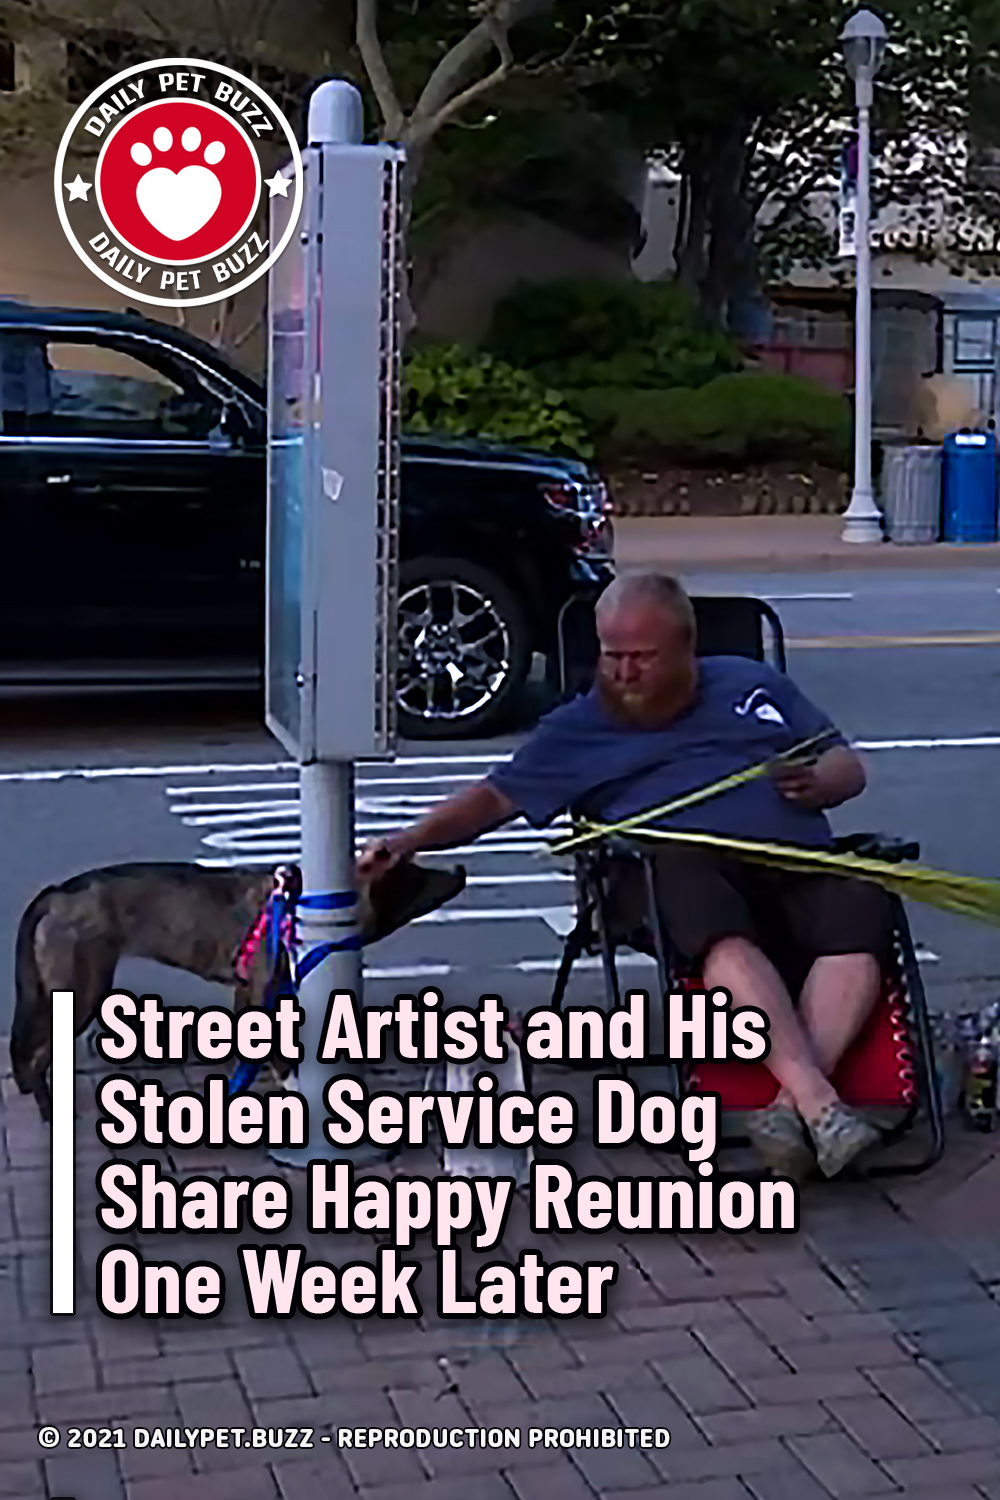 Street Artist and His Stolen Service Dog Share Happy Reunion One Week Later